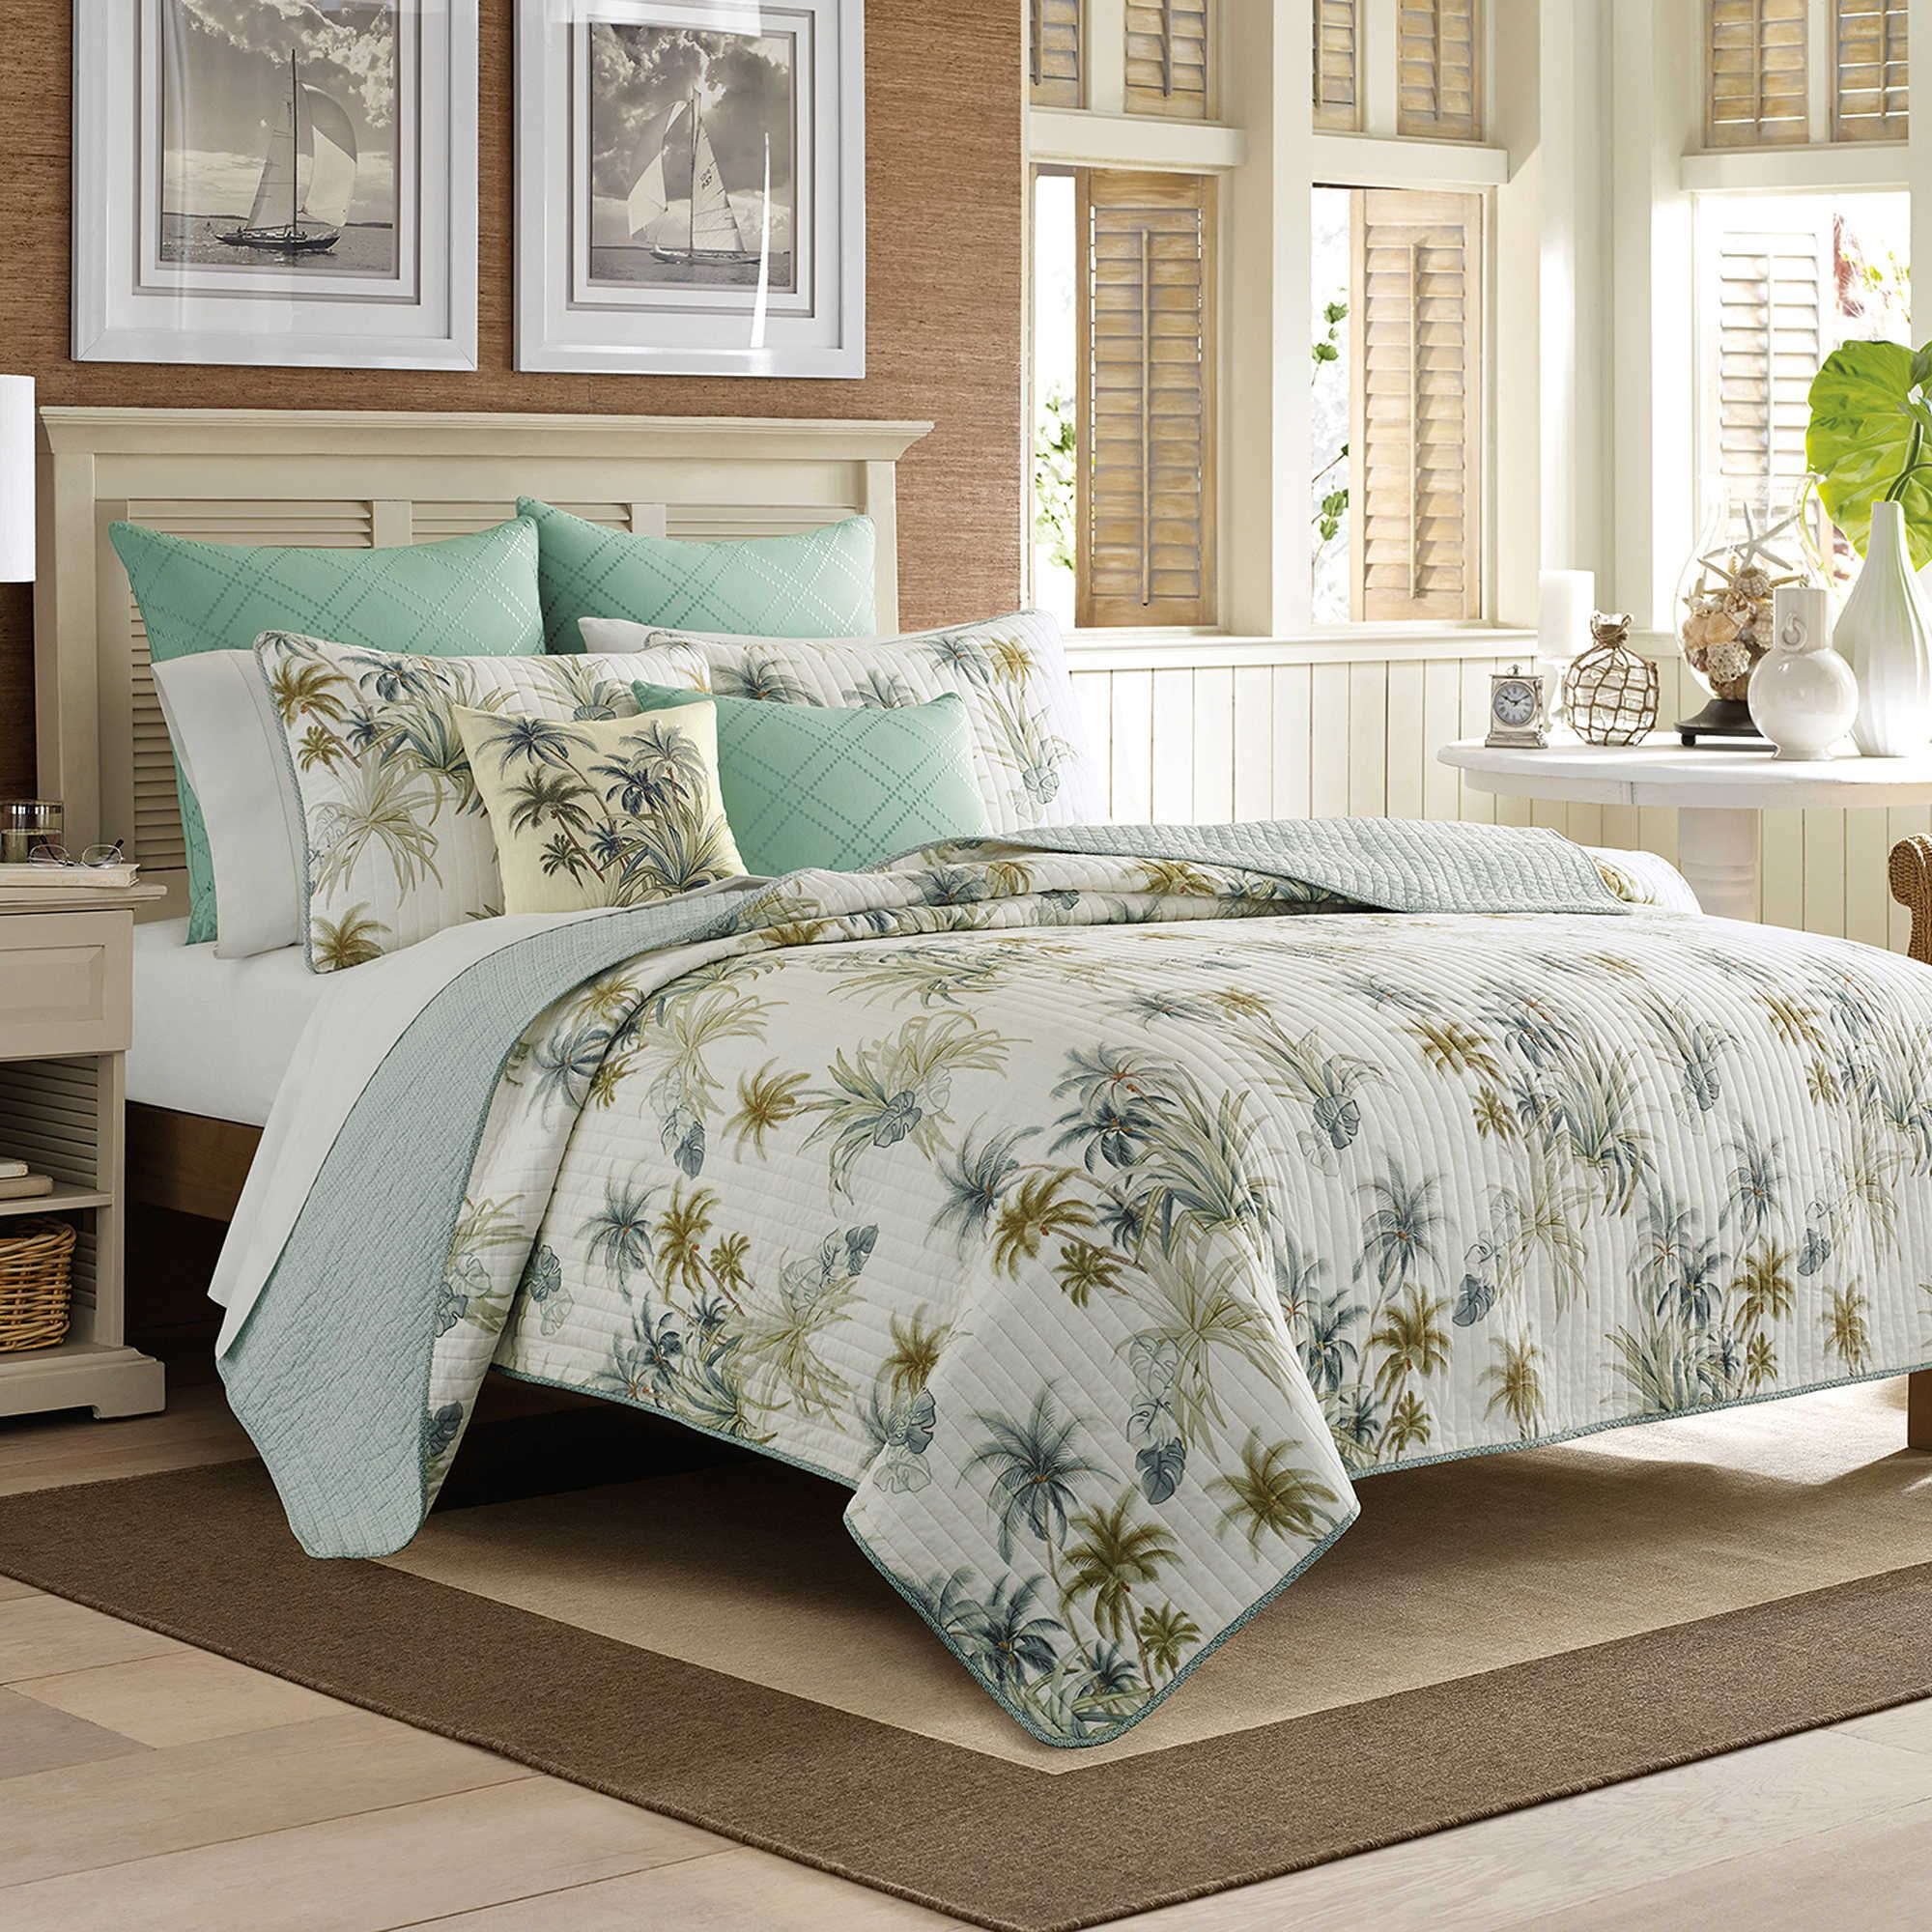 Tommy Bahama Serenity Palms Quilt Tommy Bahama Bedding Tommy